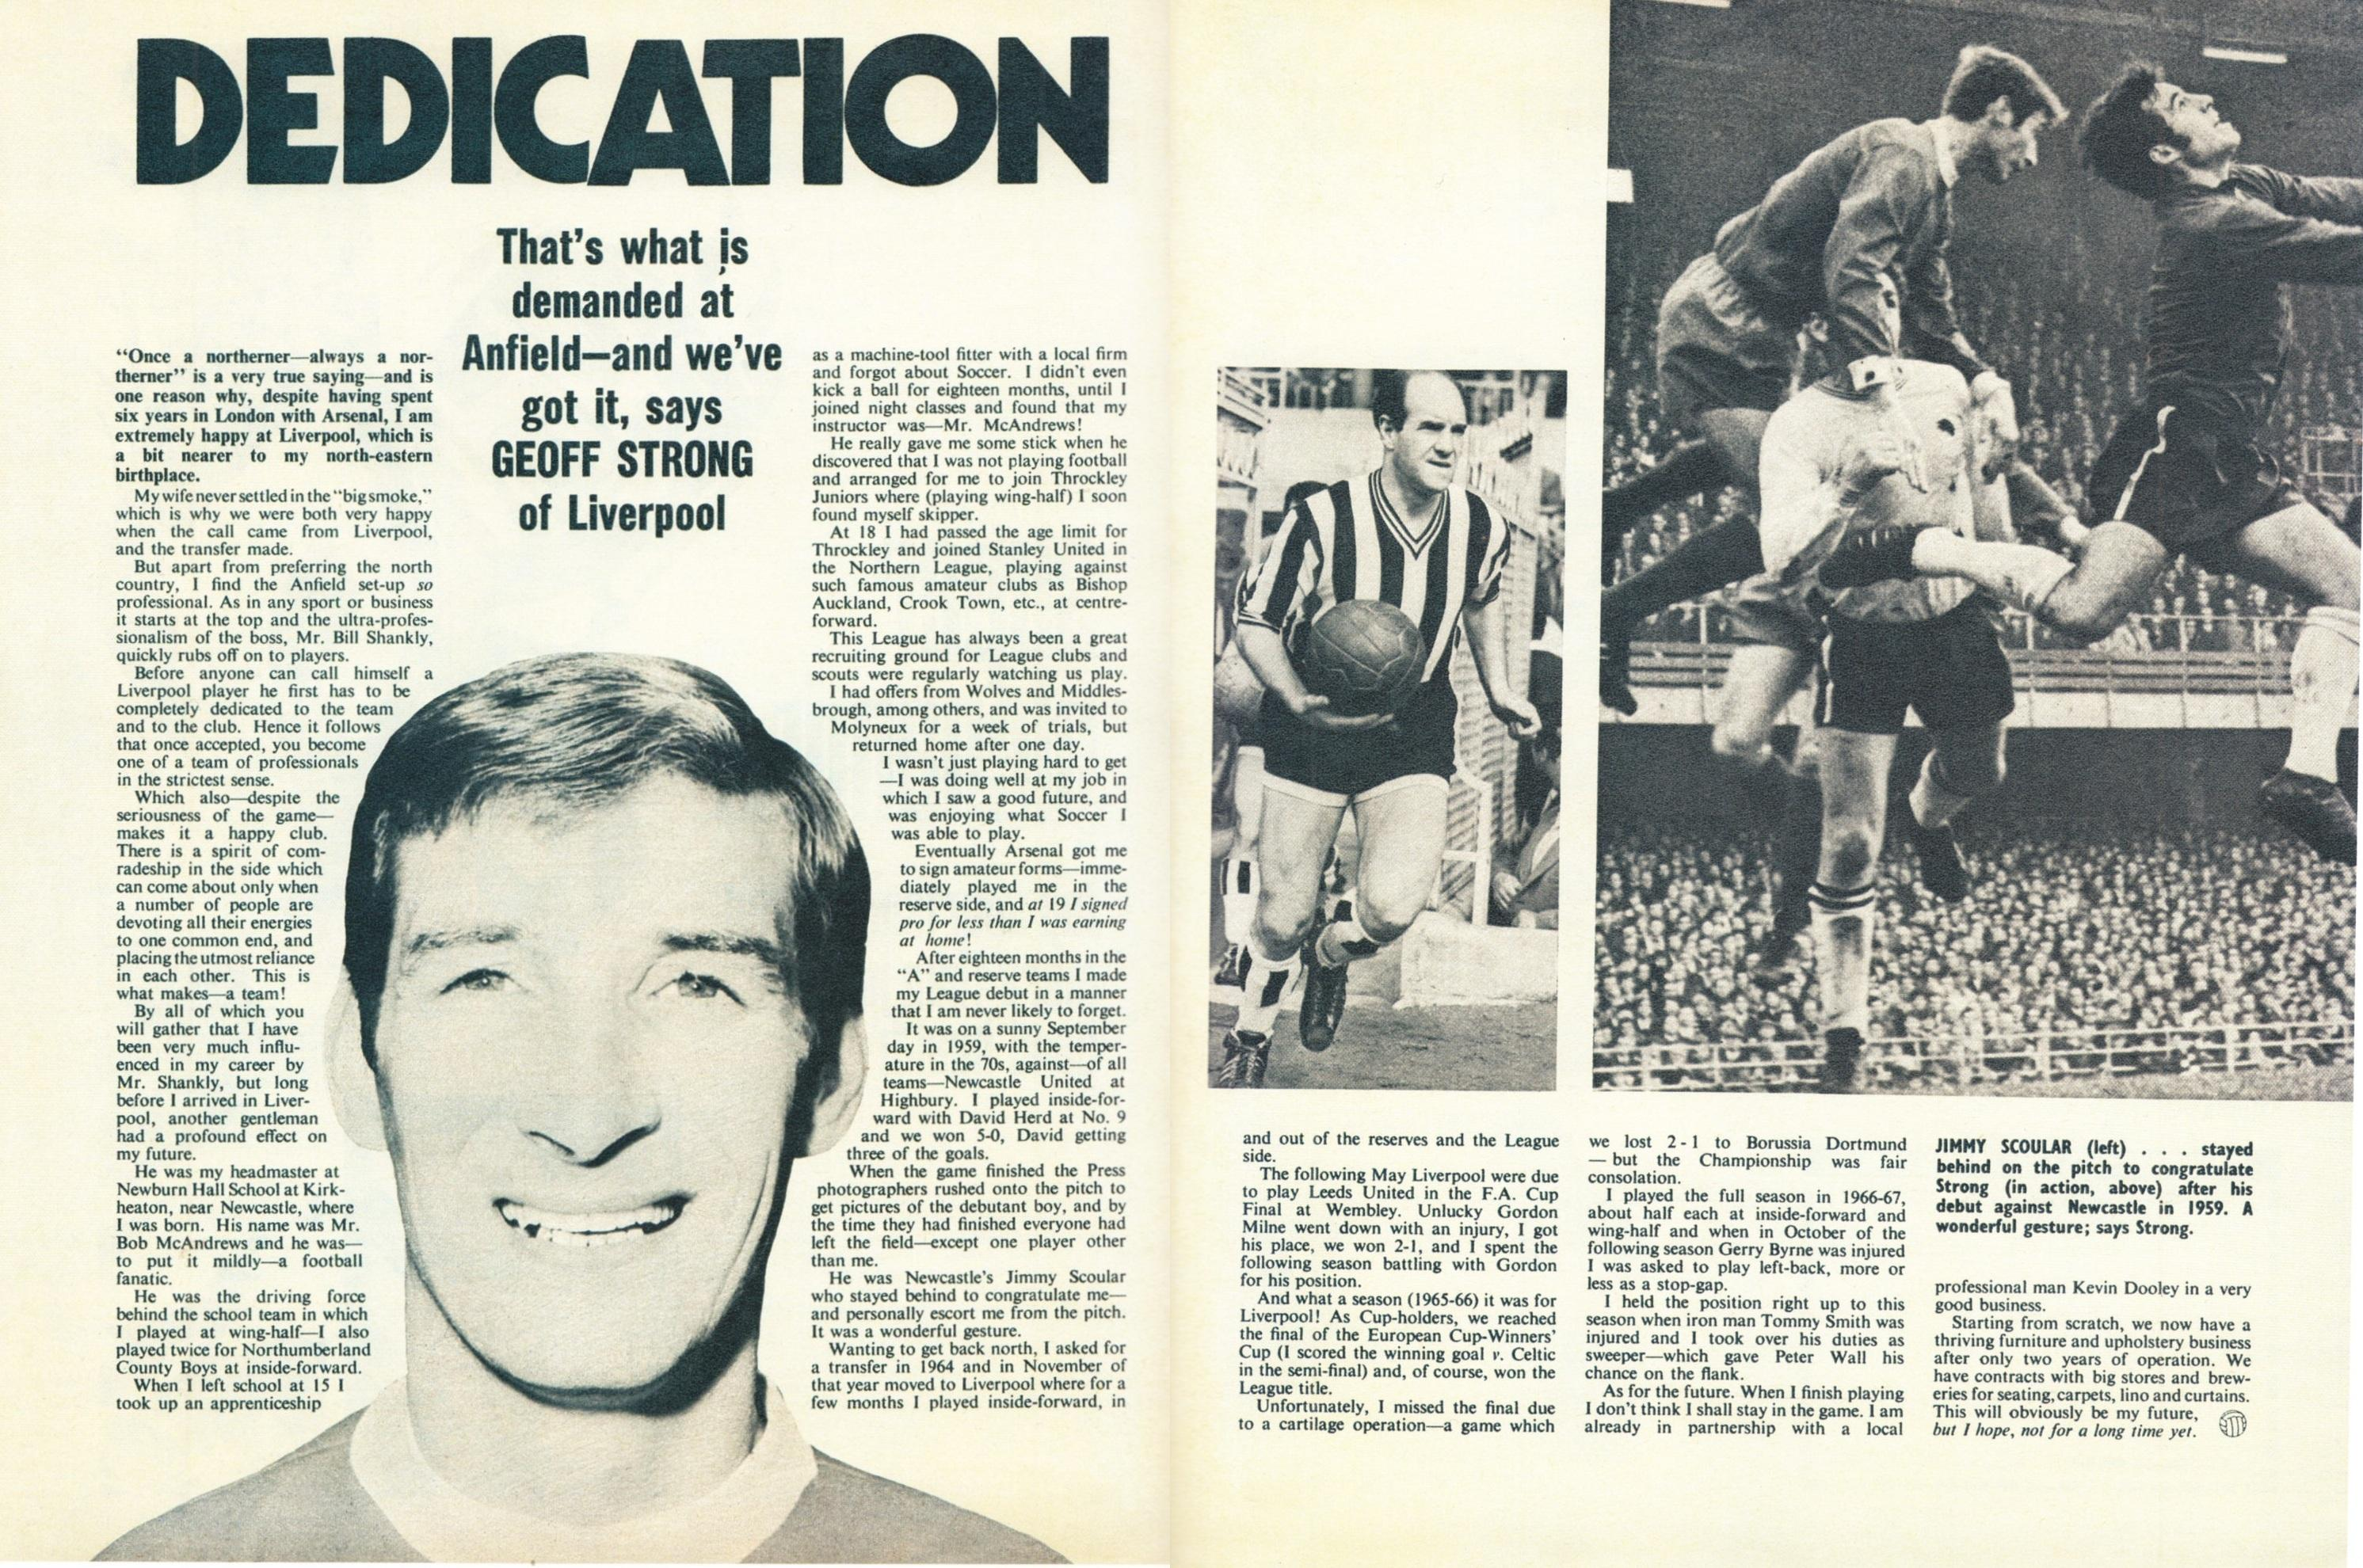 Dedication is what is demanded at Anfield - Football Monthly March 1970